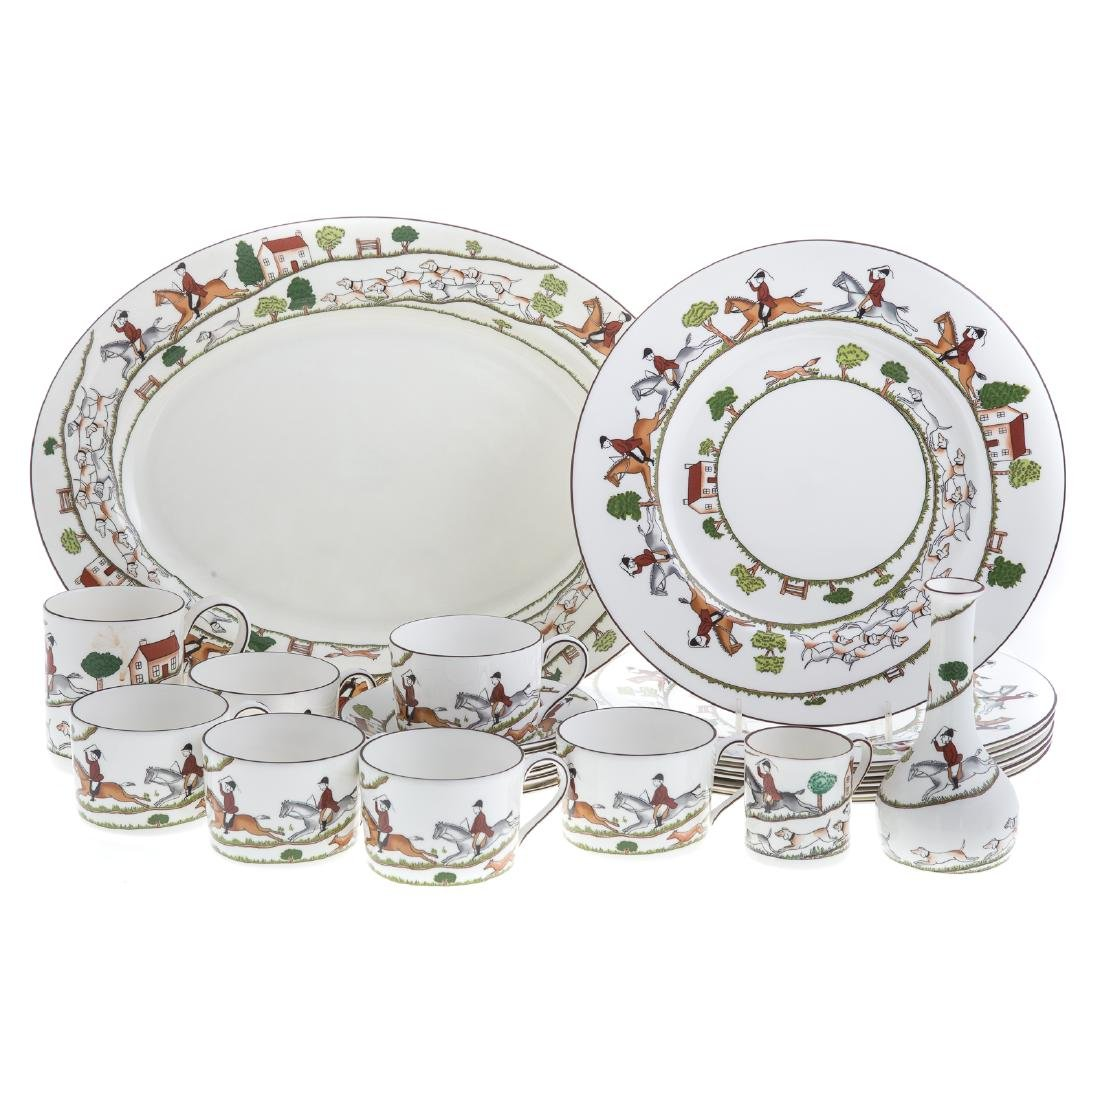 Wedgwood china 33-piece partial dinner service